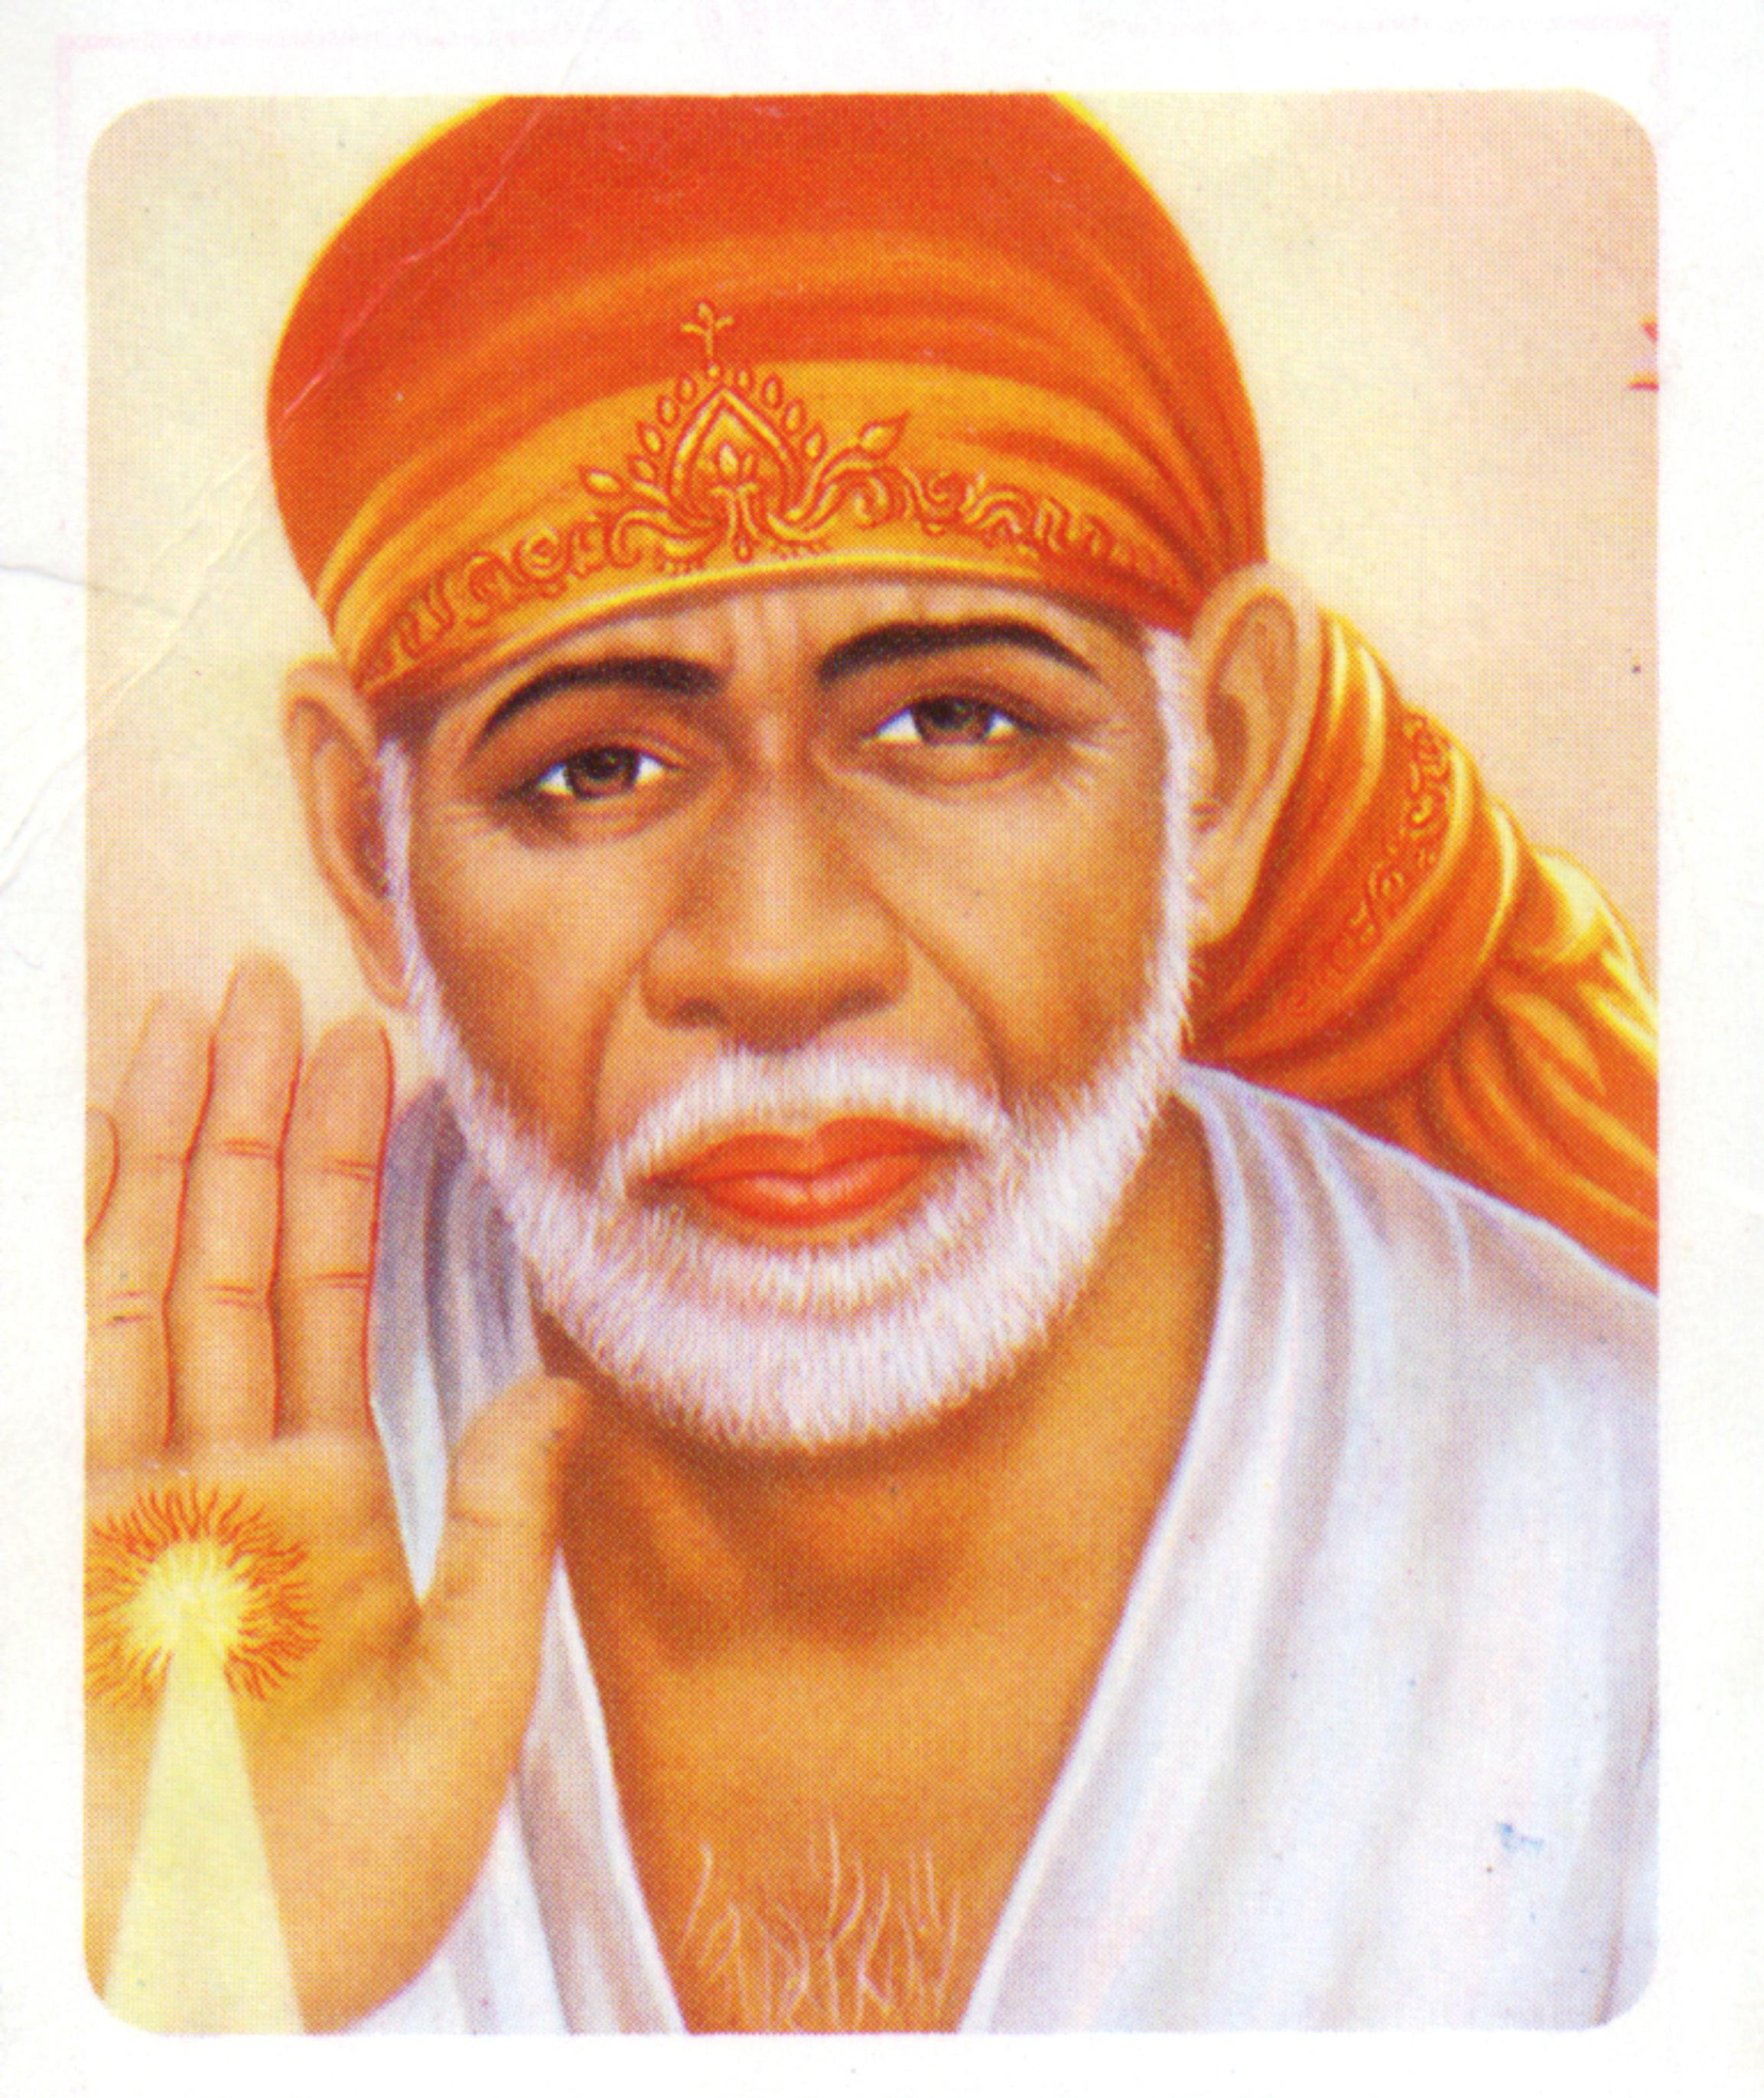 Sathay Sai Baba was rushed to